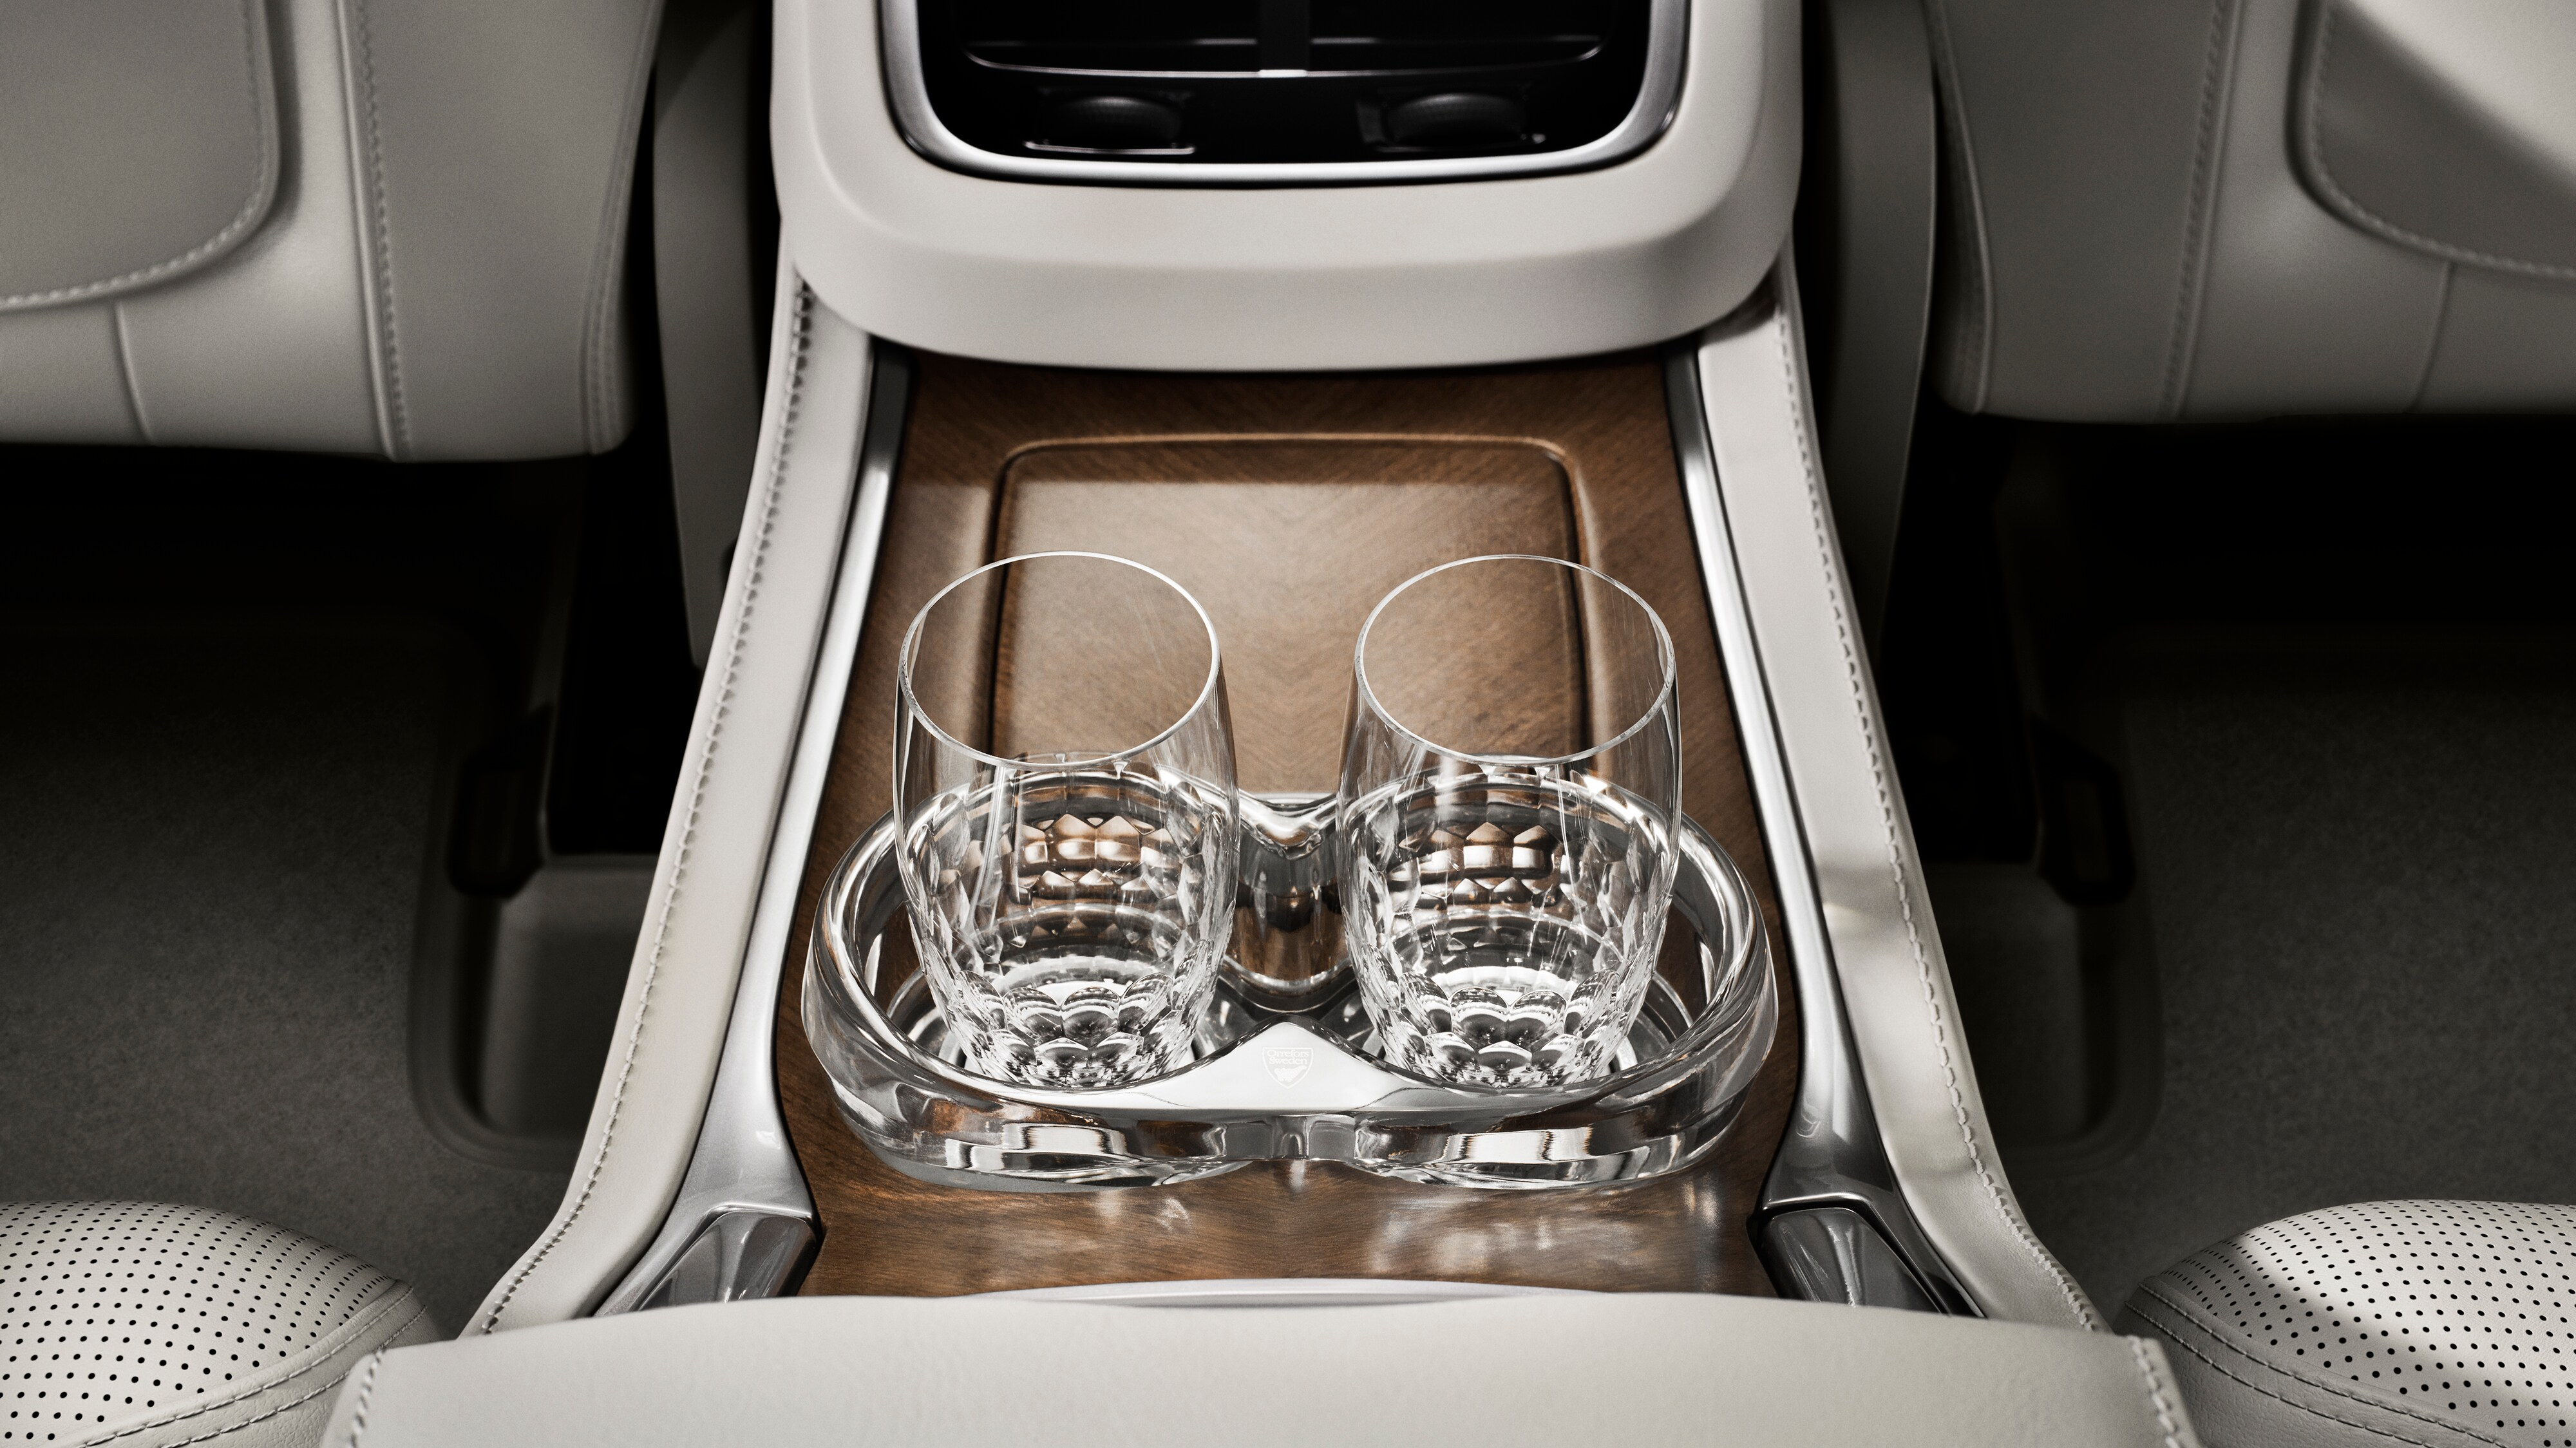 Close-up view of exclusive Orrefors crystal glasses in the Volvo XC90 Excellence